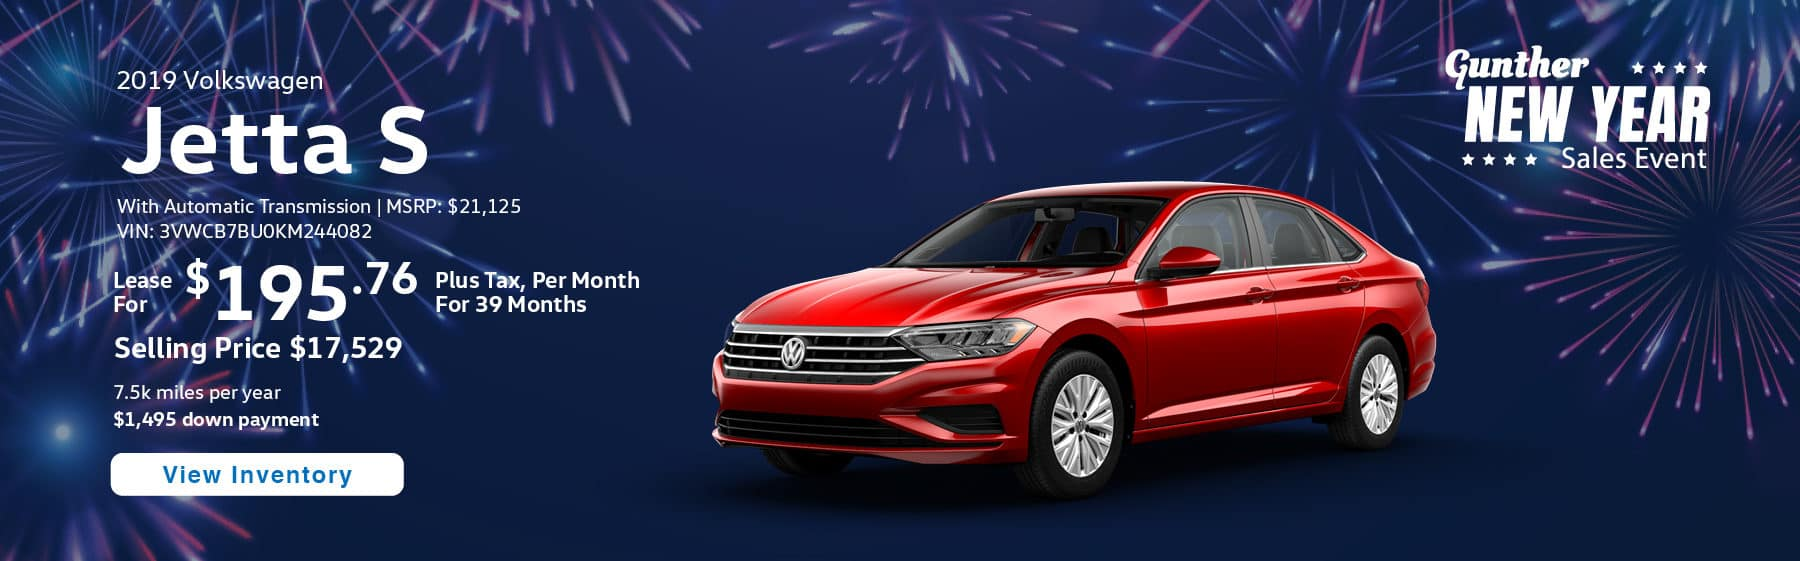 Lease the 2019 Jetta S for $195.76 per month, plus tax for 39 months.